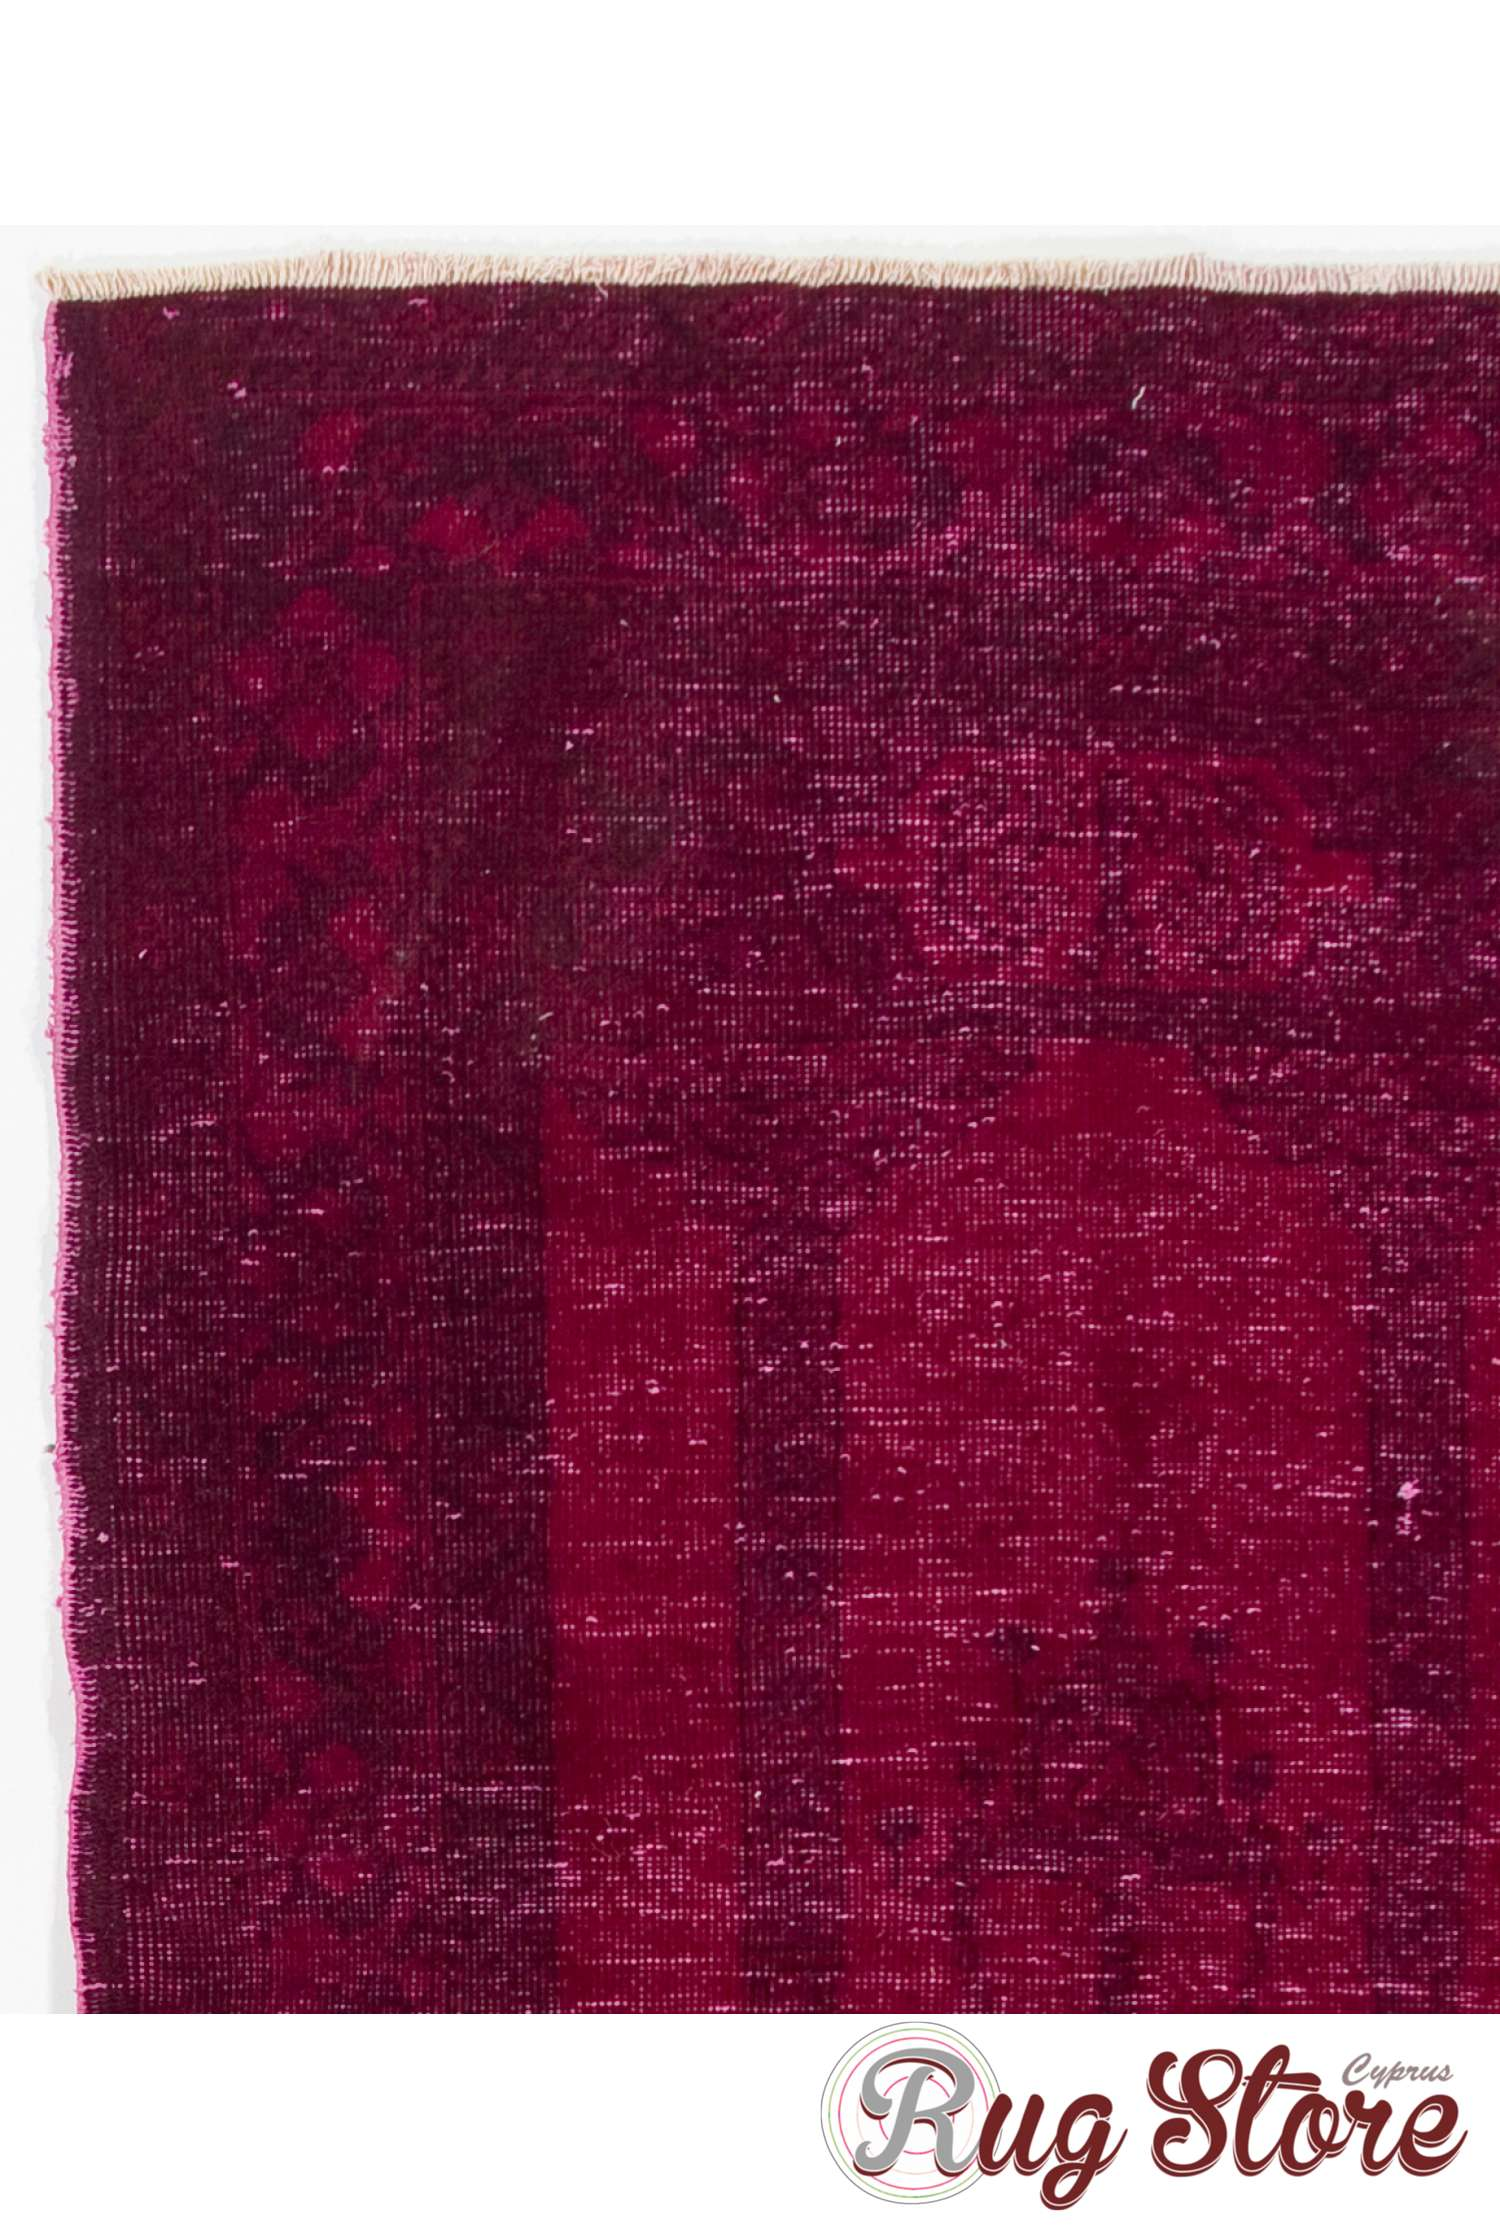 Burgundy Red Color Vintage Overdyed Handmade Turkish Rug